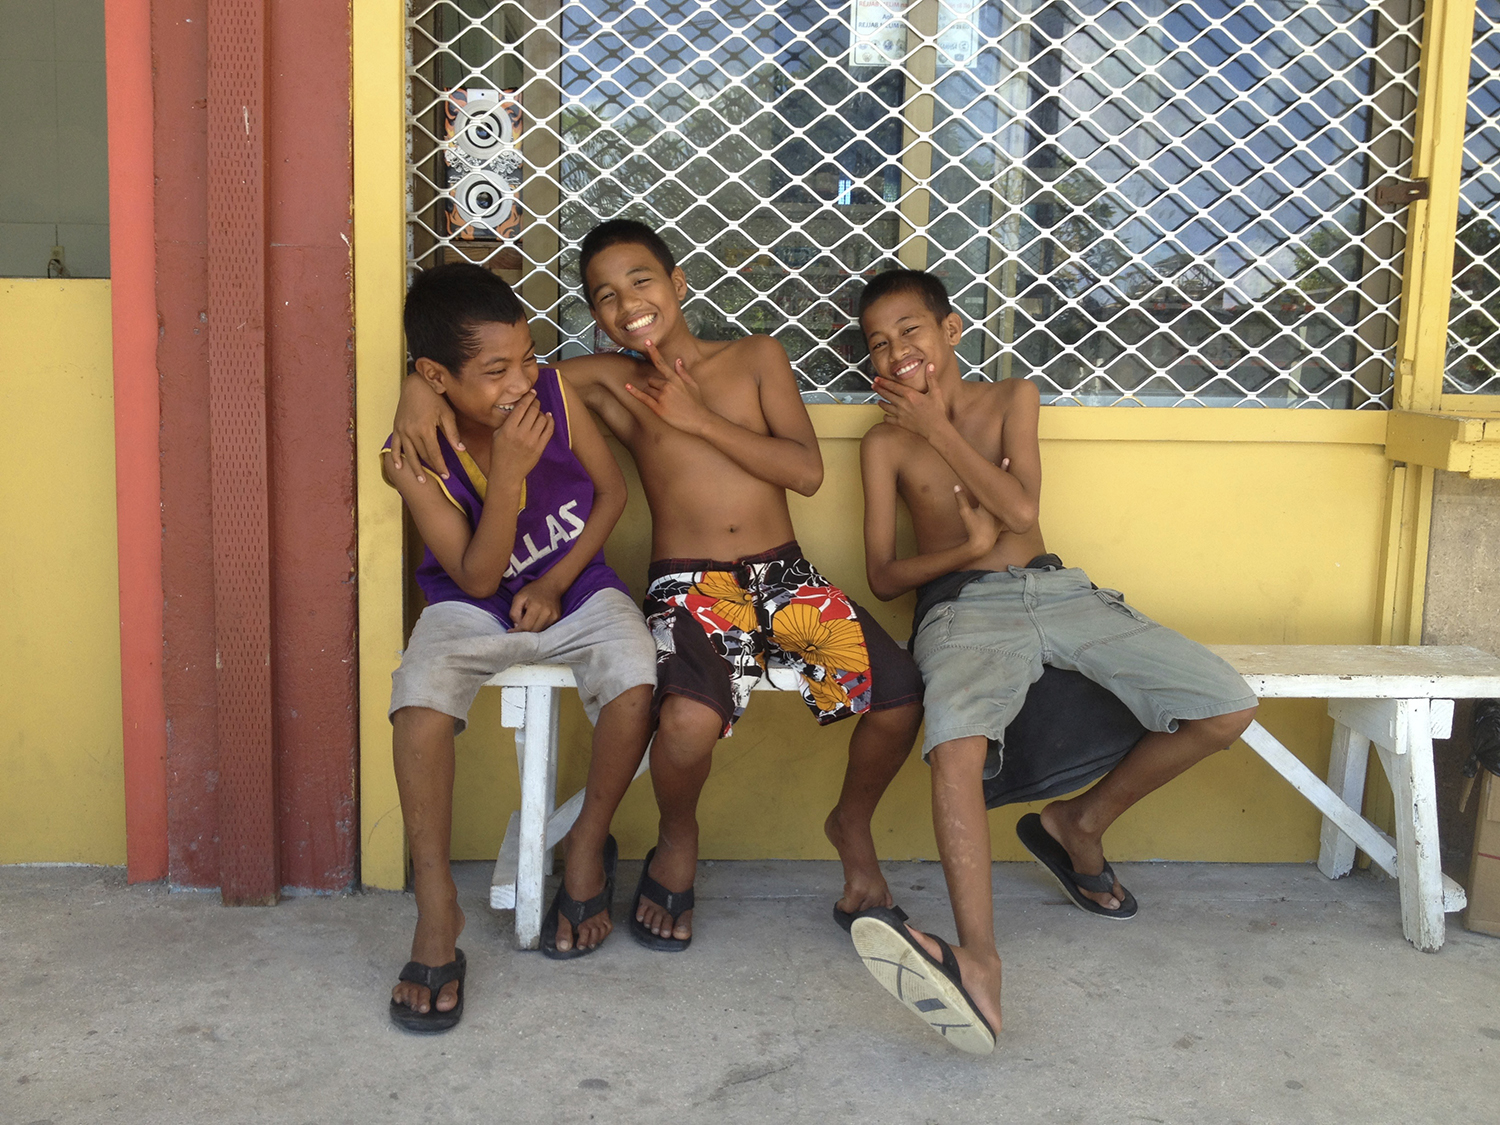 <p>The smiles of Marshallese kids come easily, once they become comfortable with strangers.</p>